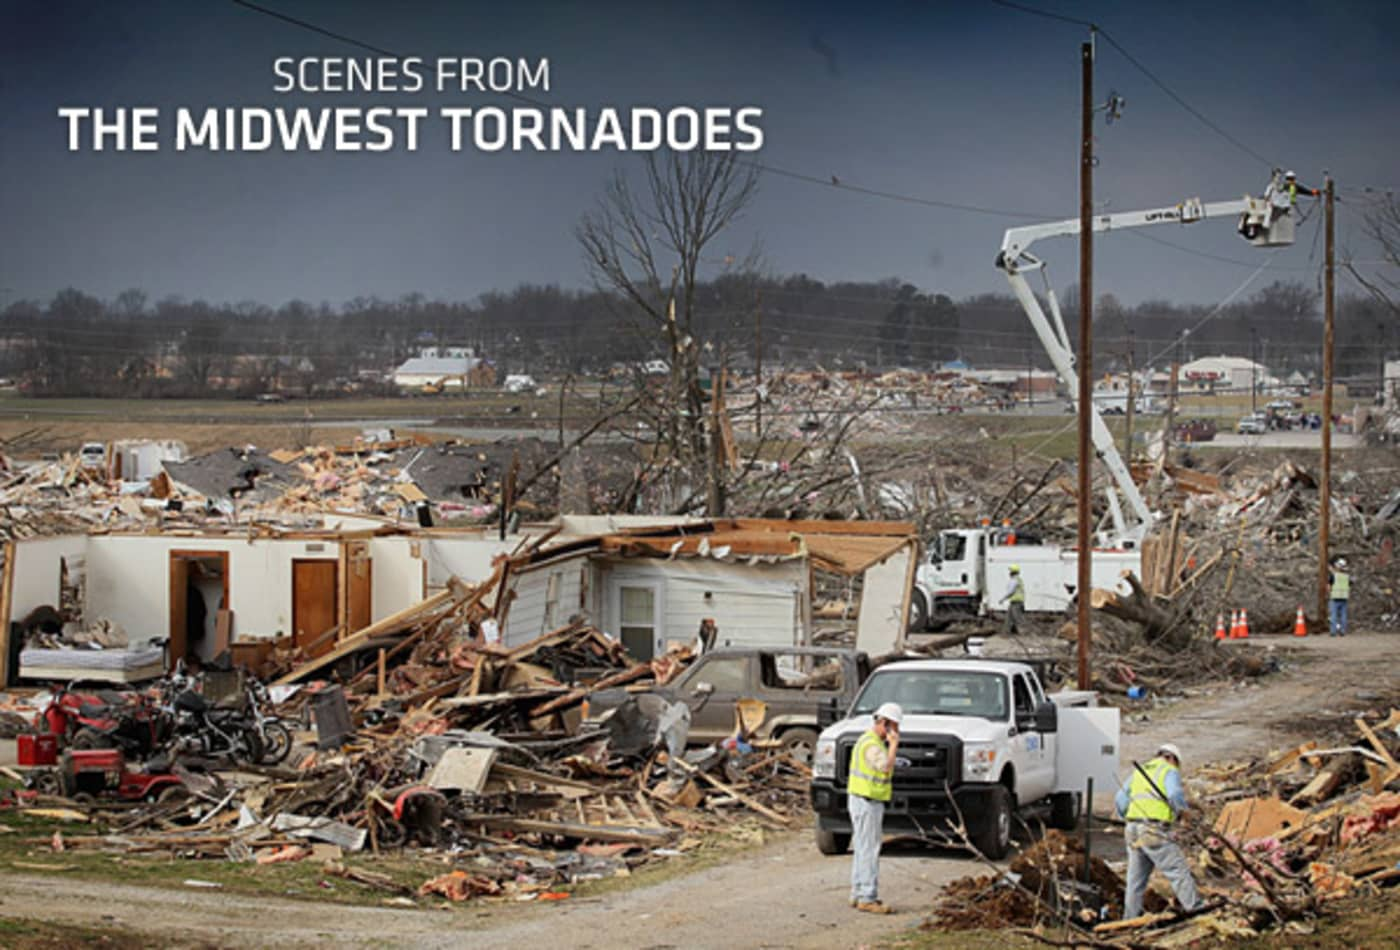 scenes-from-the-midwest-tornadoes-cover.jpg